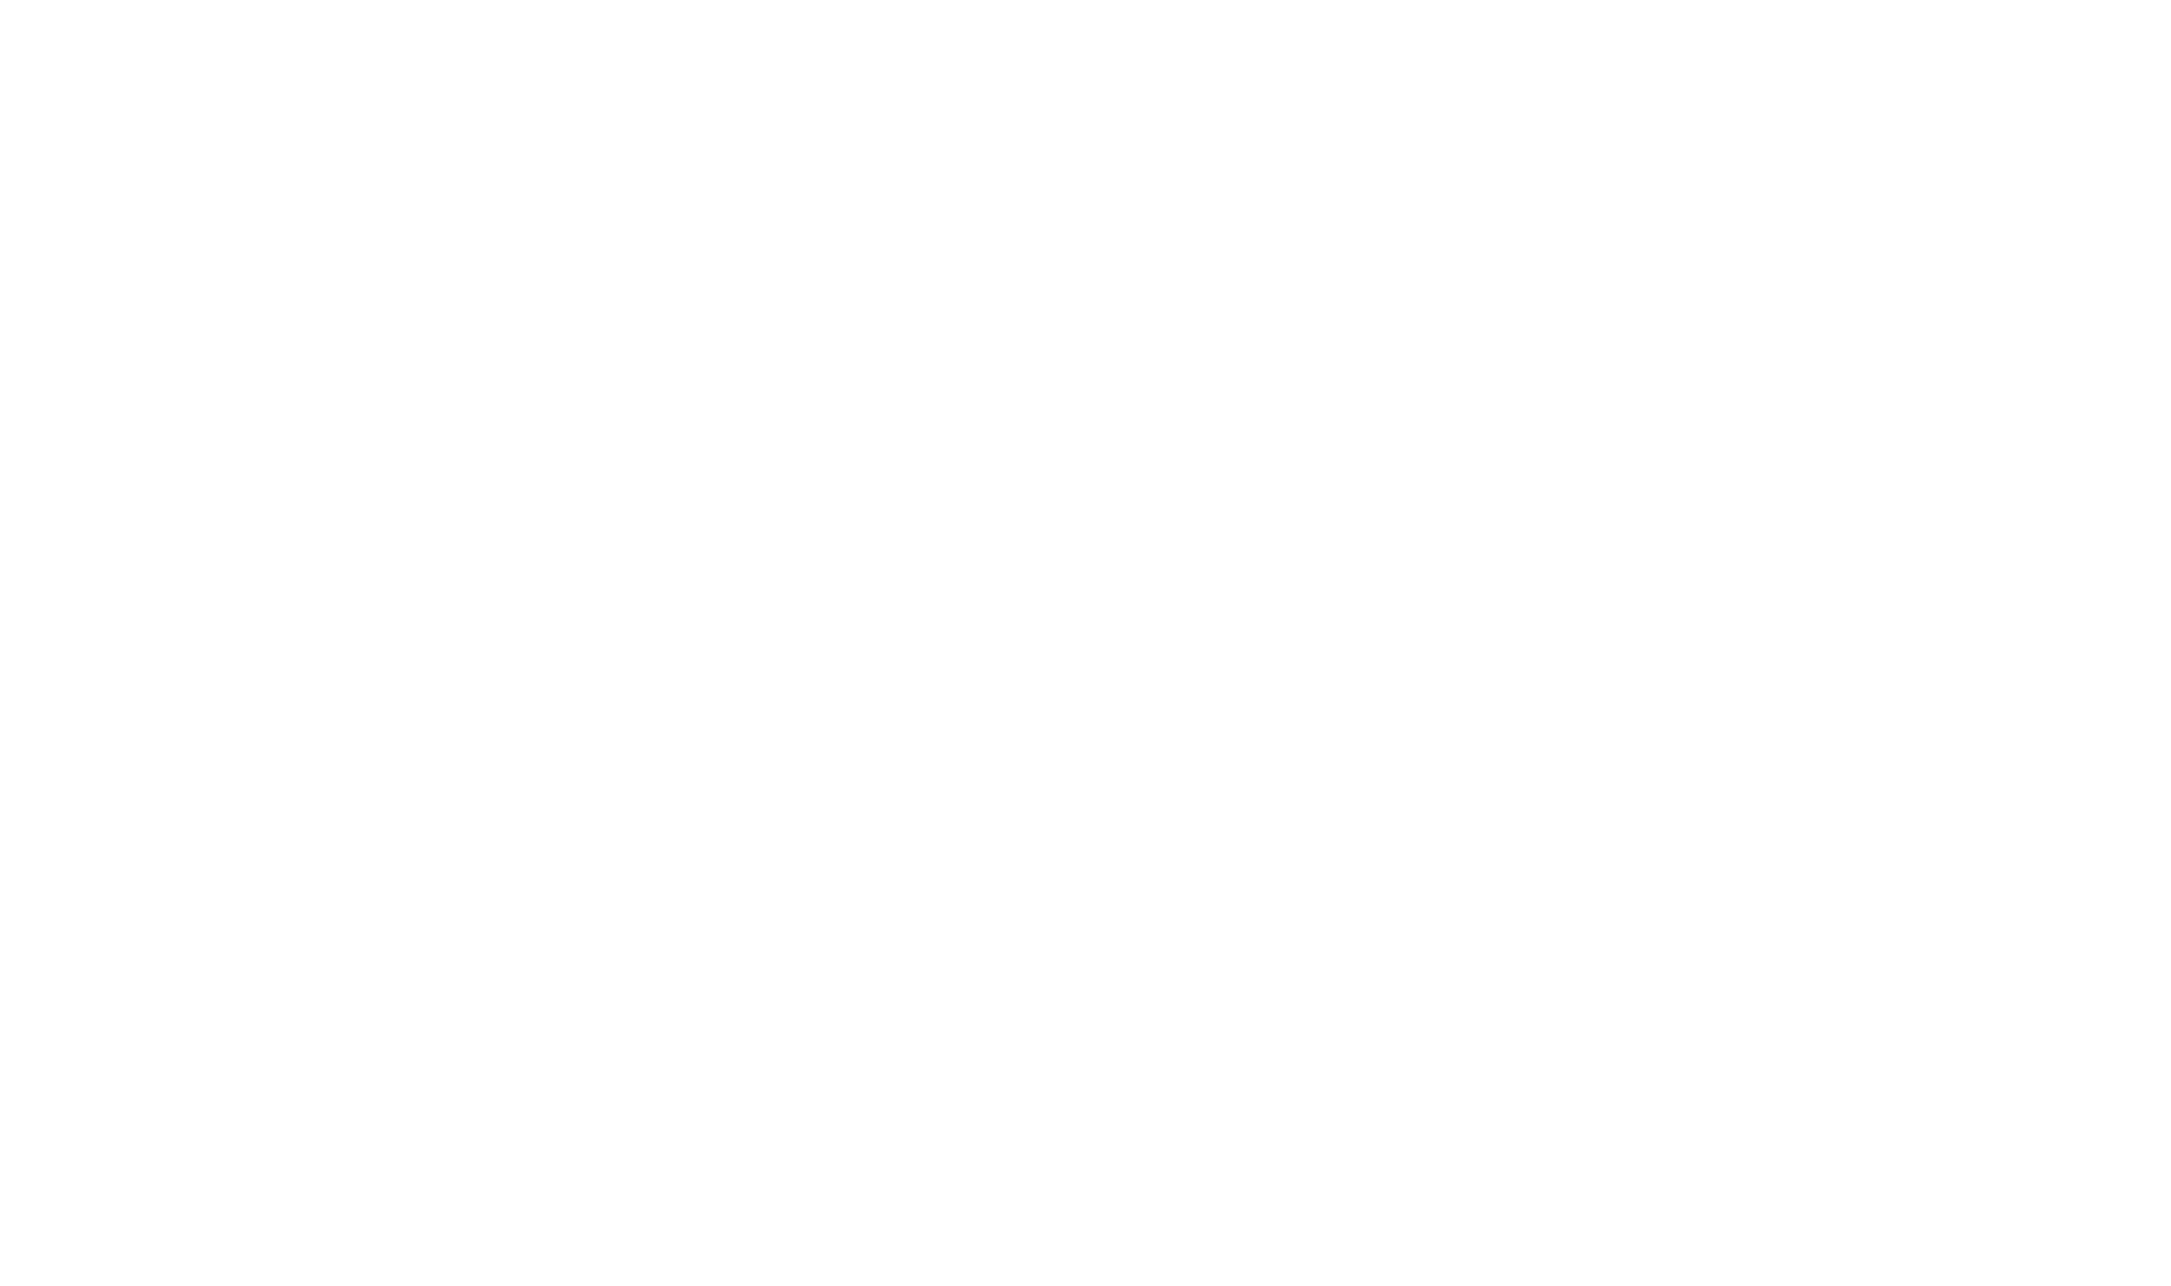 cnn-international-logo-png-transparent